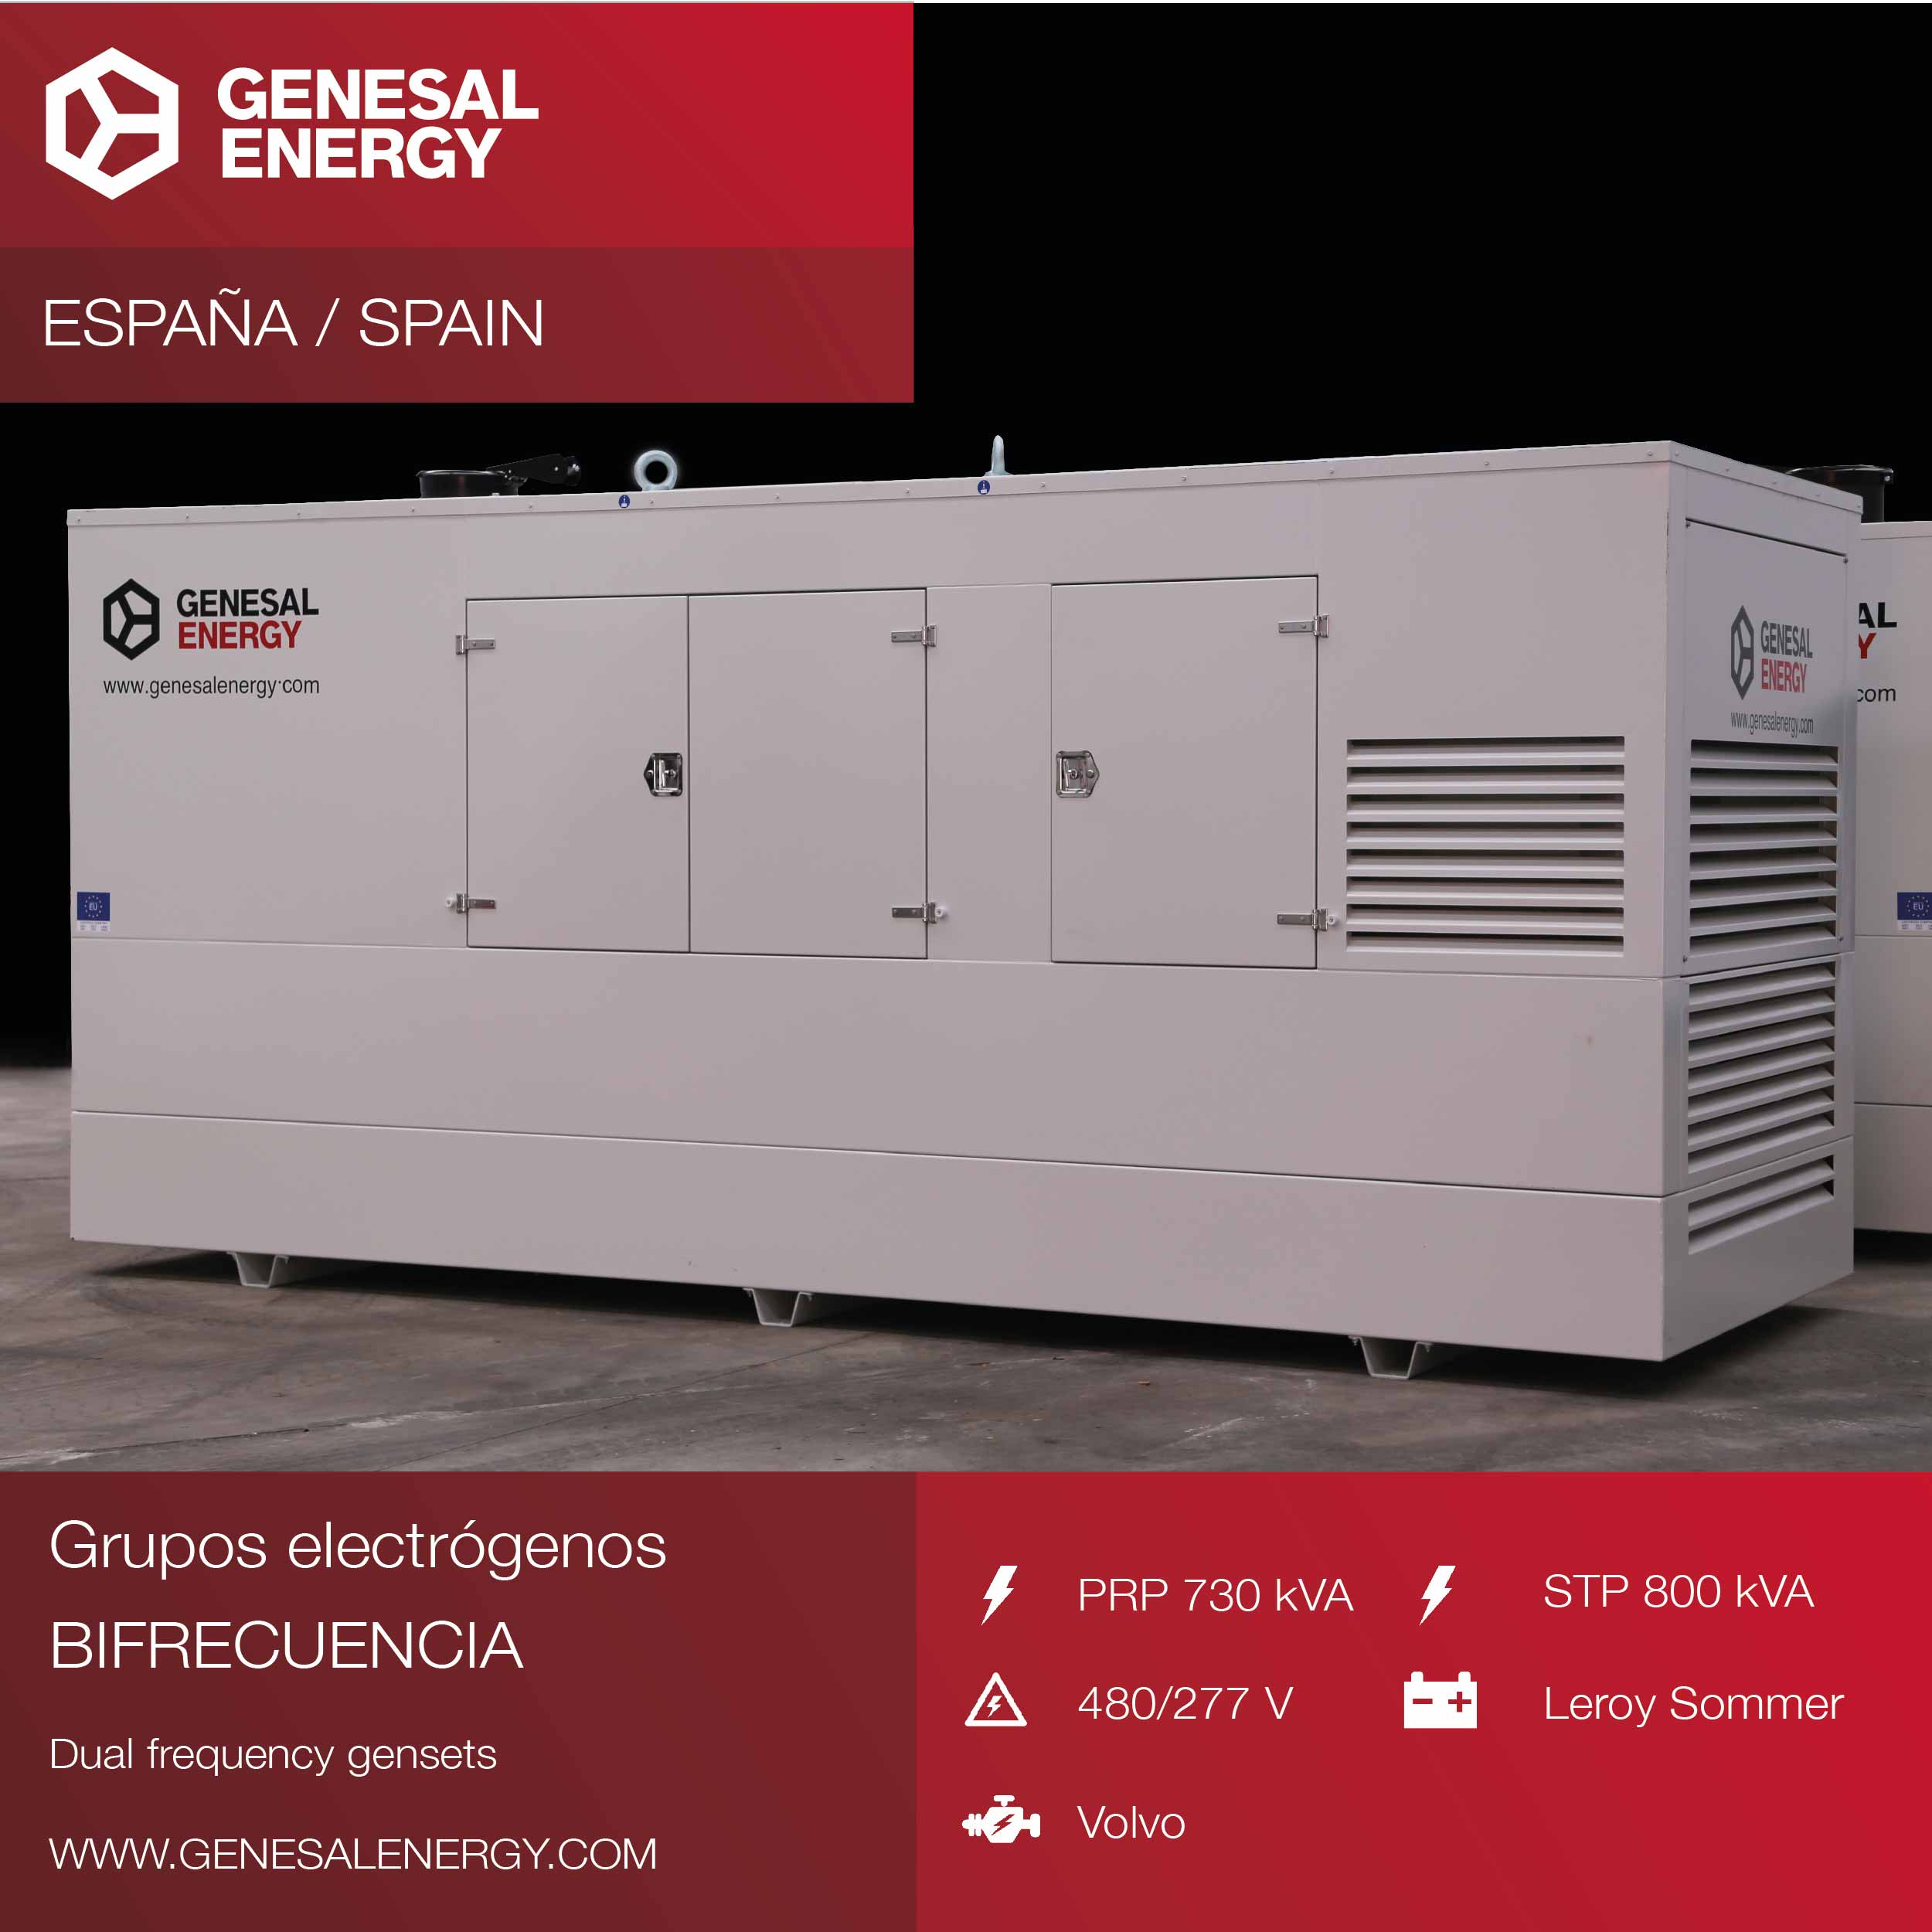 Dual frequency and dual voltage gensets for an international construction company